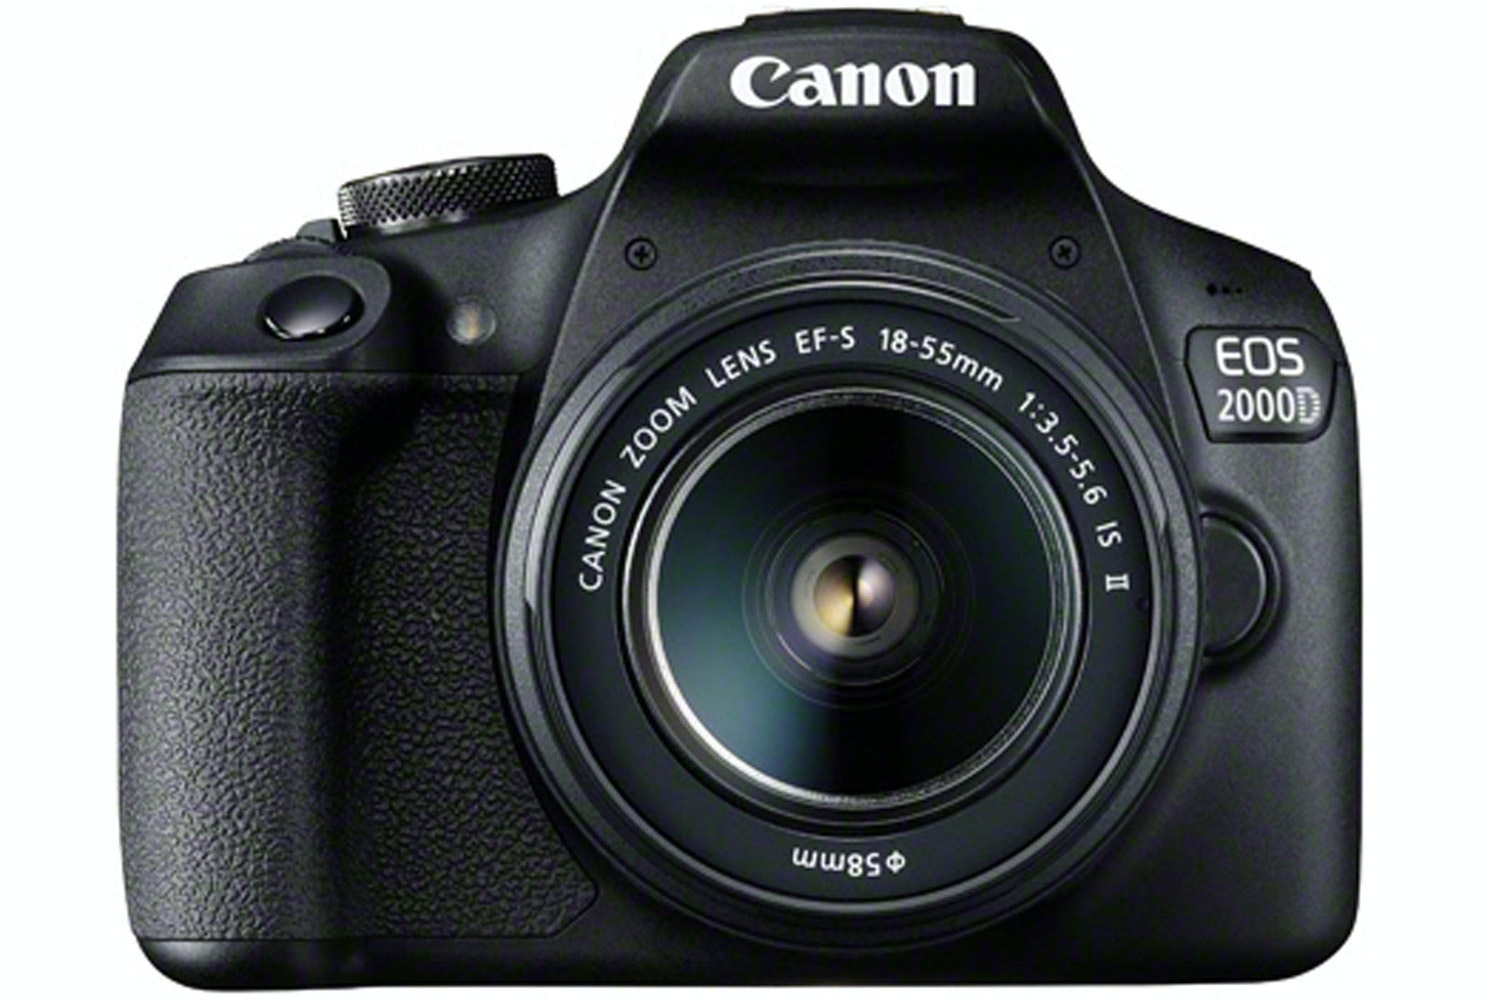 Canon EOS 2000D | 18-55mm IS II Lens